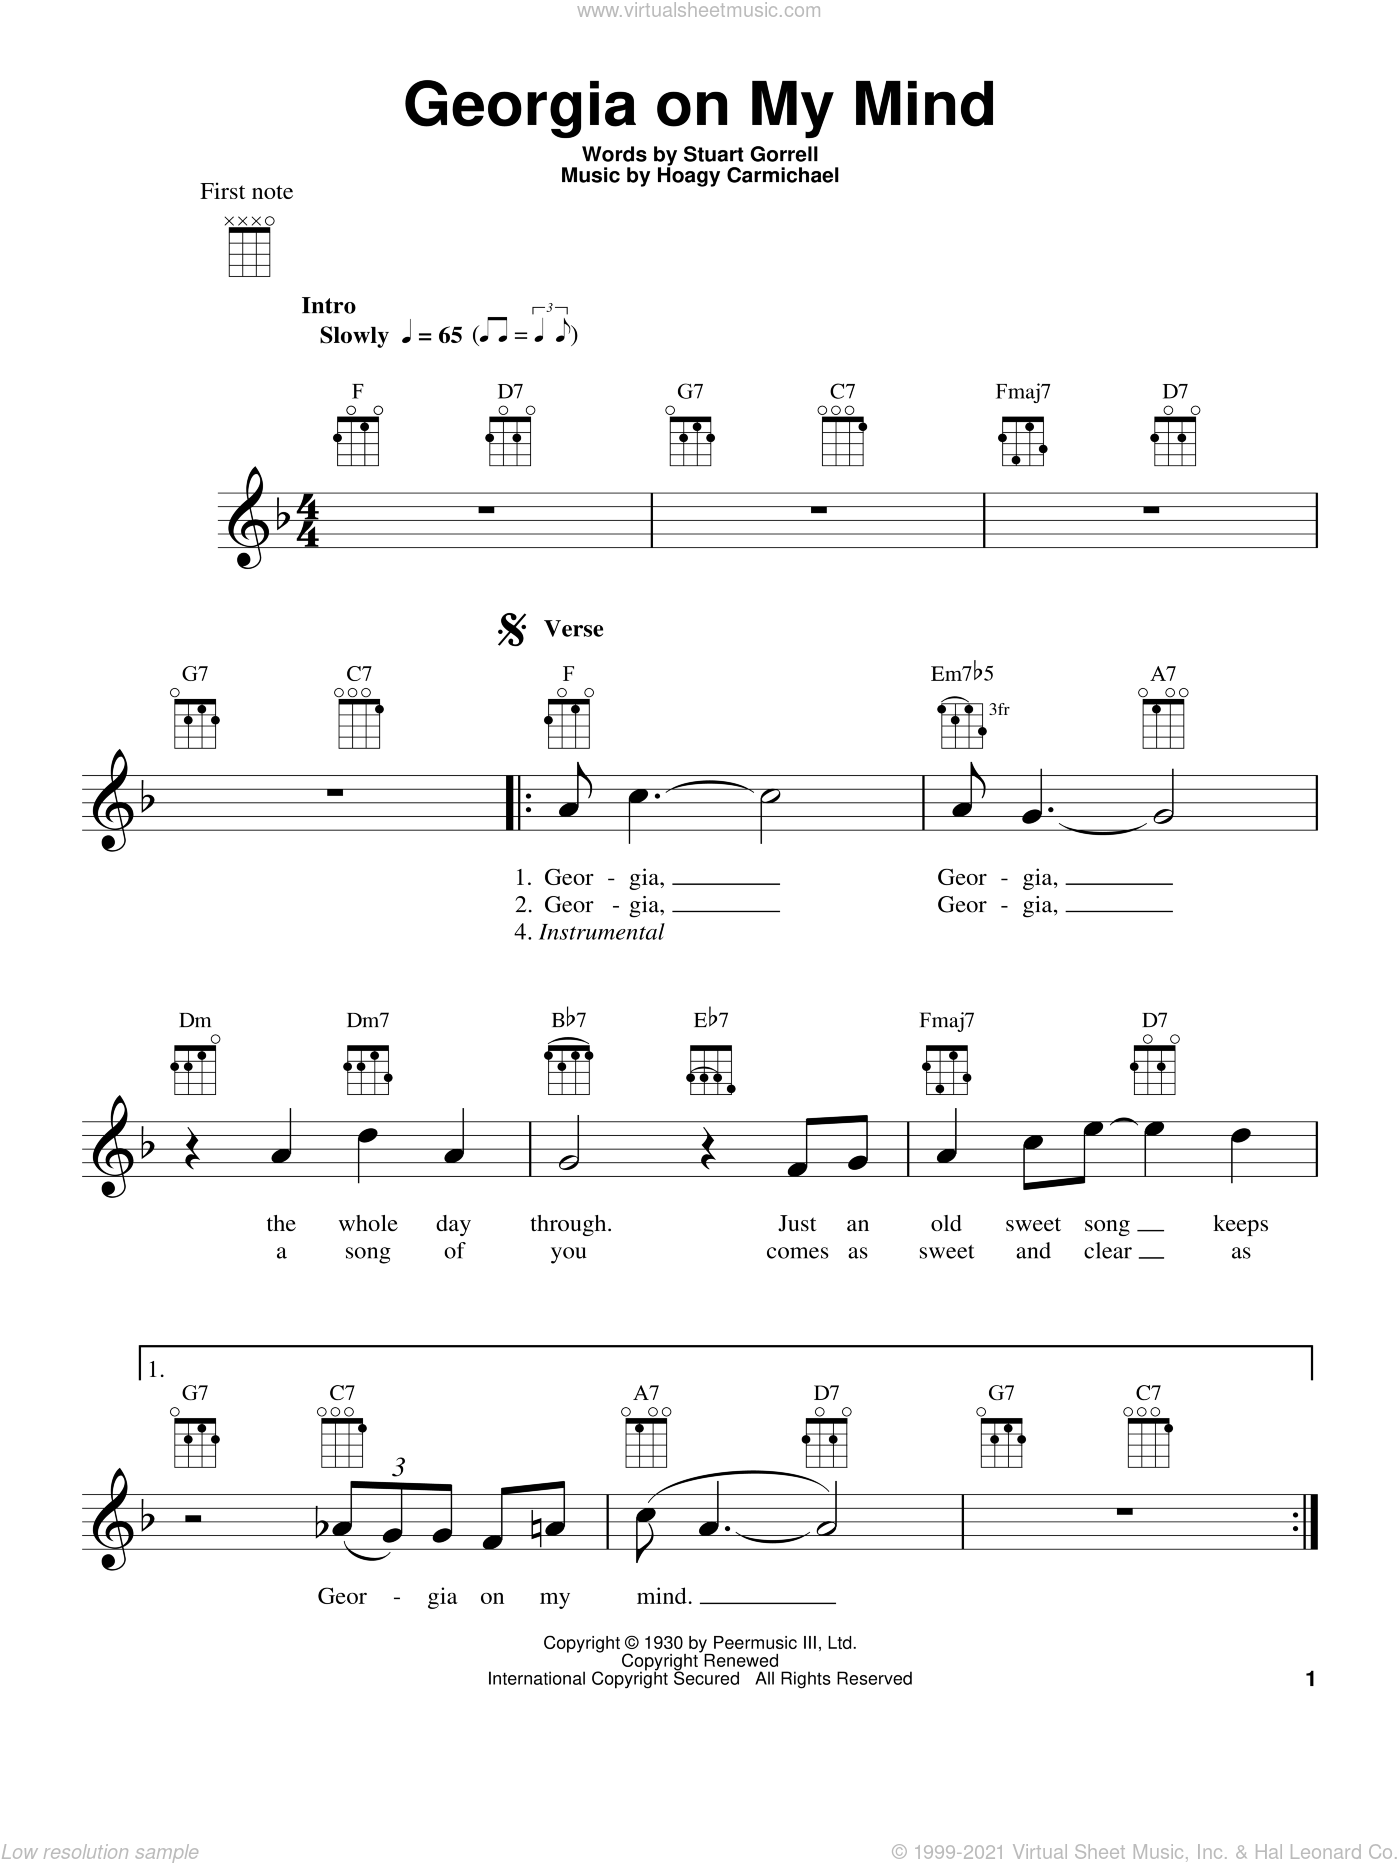 Georgia On My Mind sheet music for ukulele by Stuart Gorrell, Hoagy Carmichael, Ray Charles and Willie Nelson